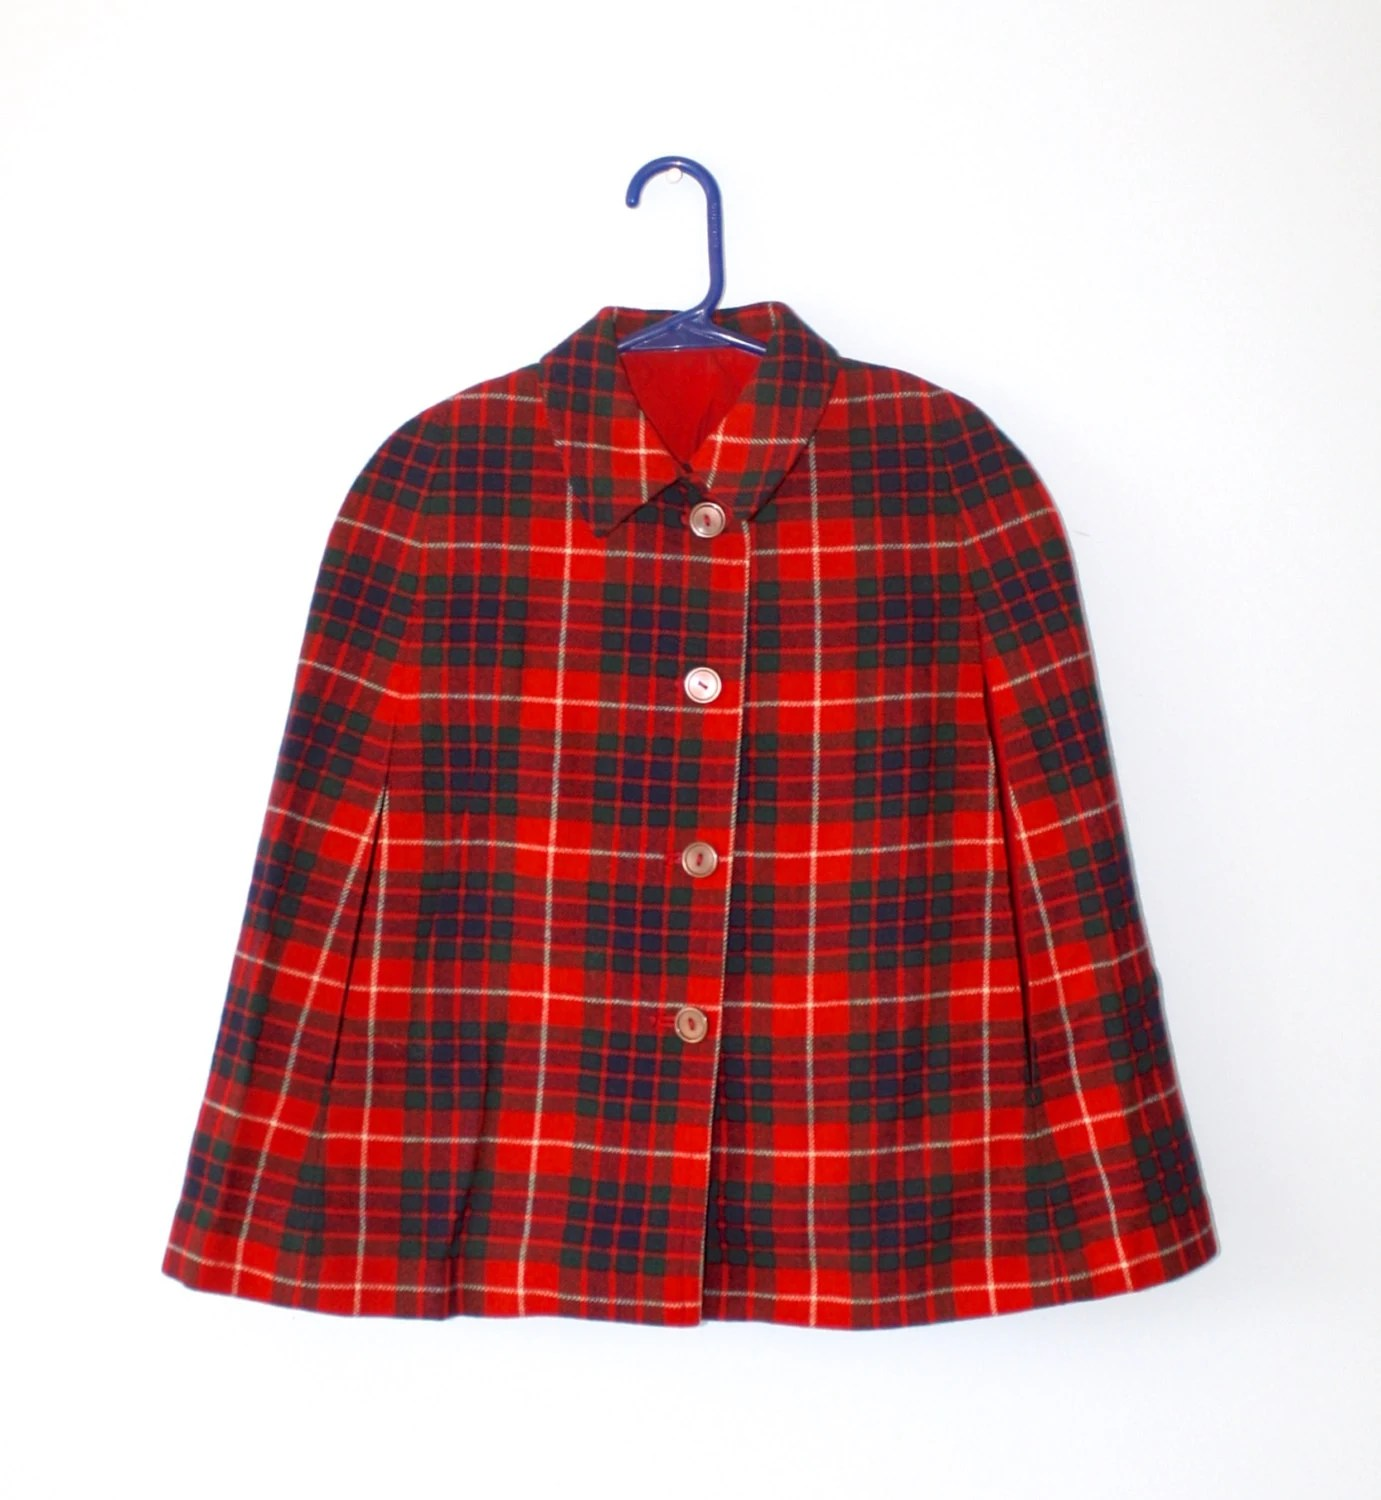 Vintage Girls Red Plaid Cape 1950s 60s Wool Plaid Reversible